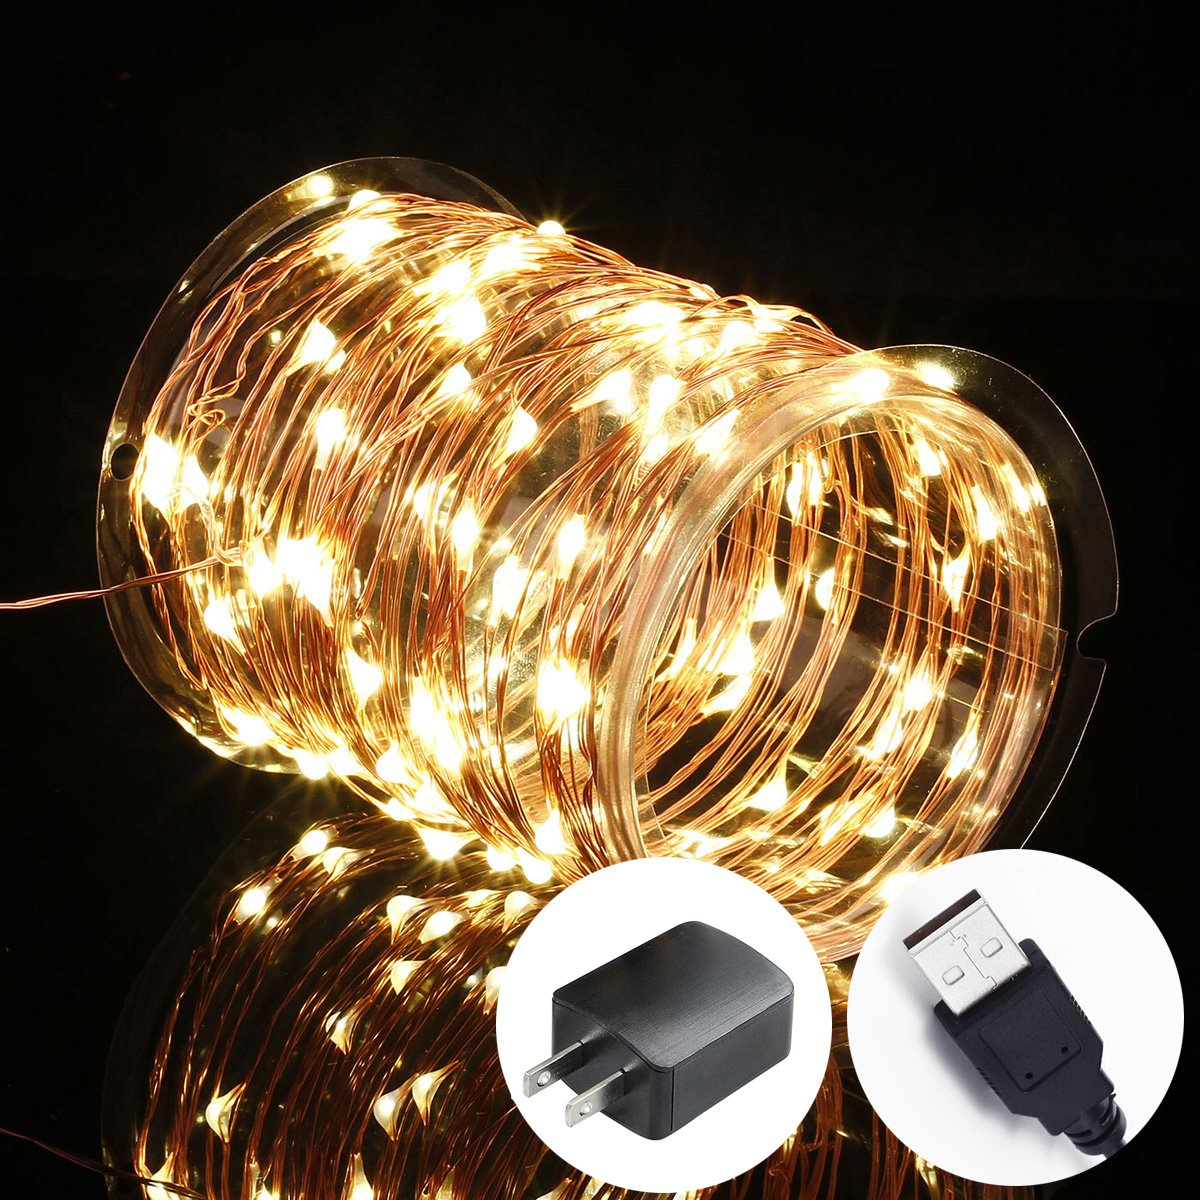 quality design 03cbb 46cca Details about Innotree Fairy Lights USB Plug In, 33Ft 100 LED Warm White  Waterproof Starry